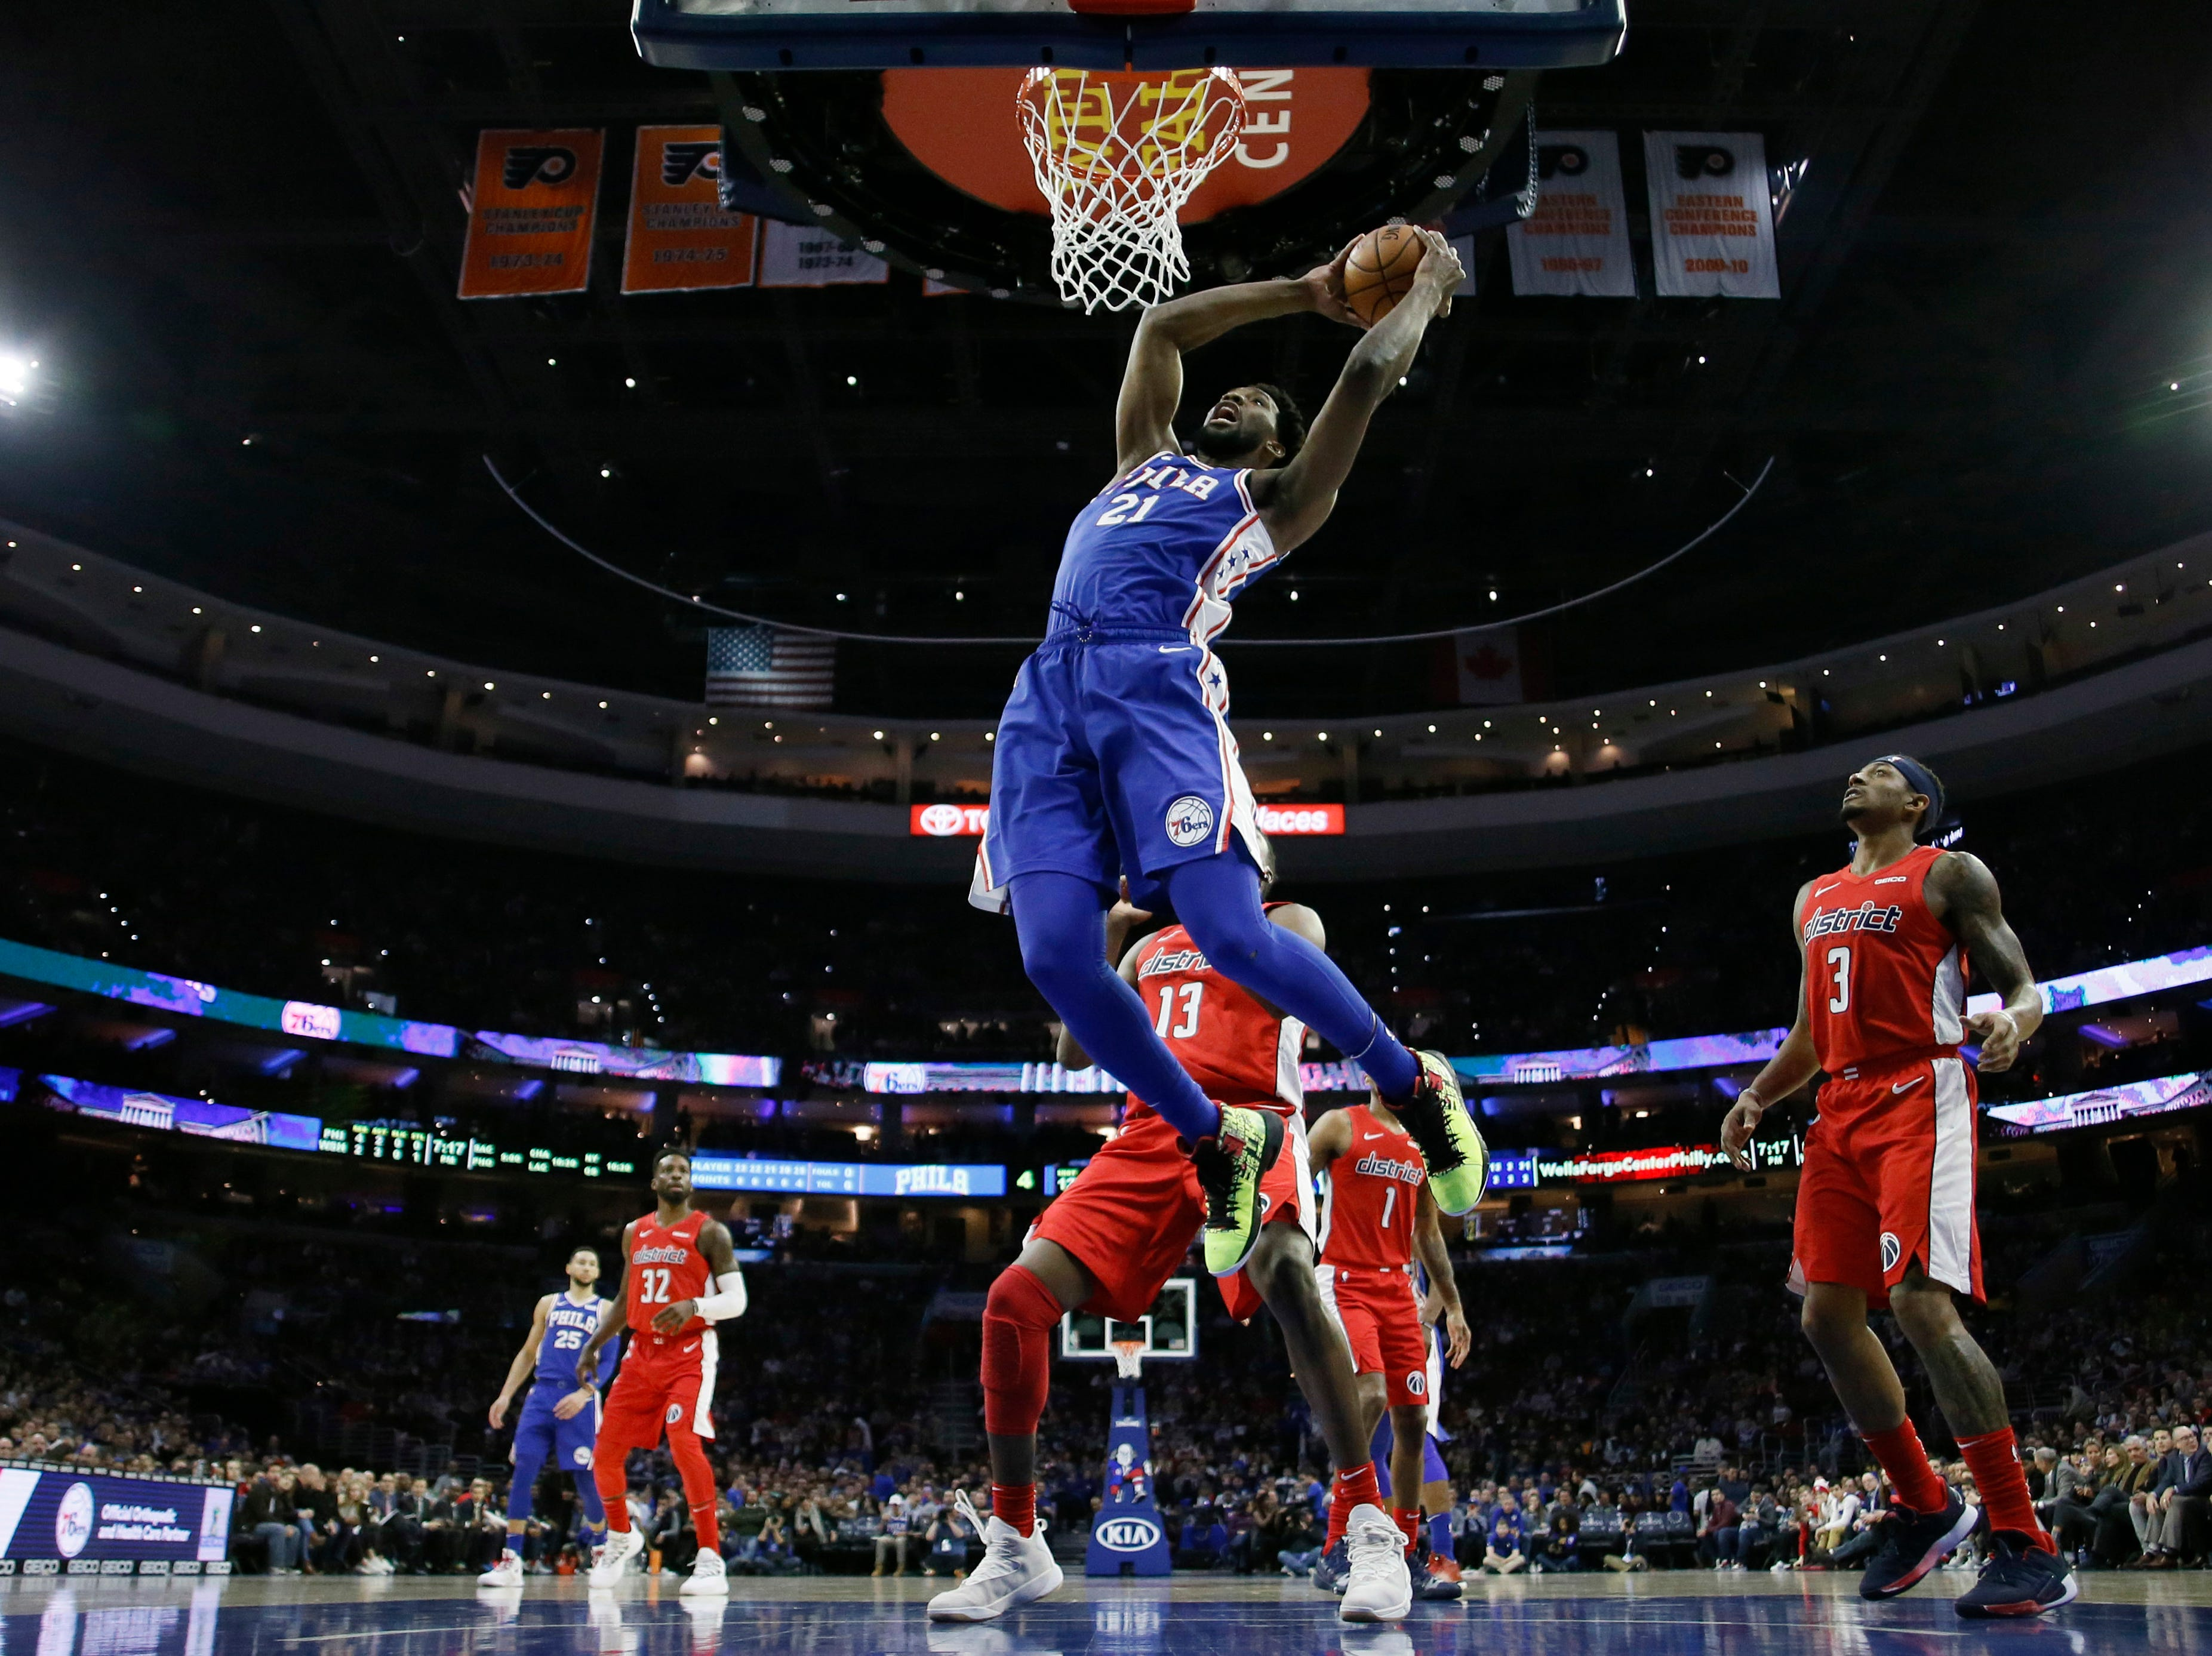 Philadelphia 76ers' Joel Embiid (21) goes up for a dunk during the first half of an NBA basketball game against the Washington Wizards, Tuesday, Jan. 8, 2019, in Philadelphia. (AP Photo/Matt Slocum)